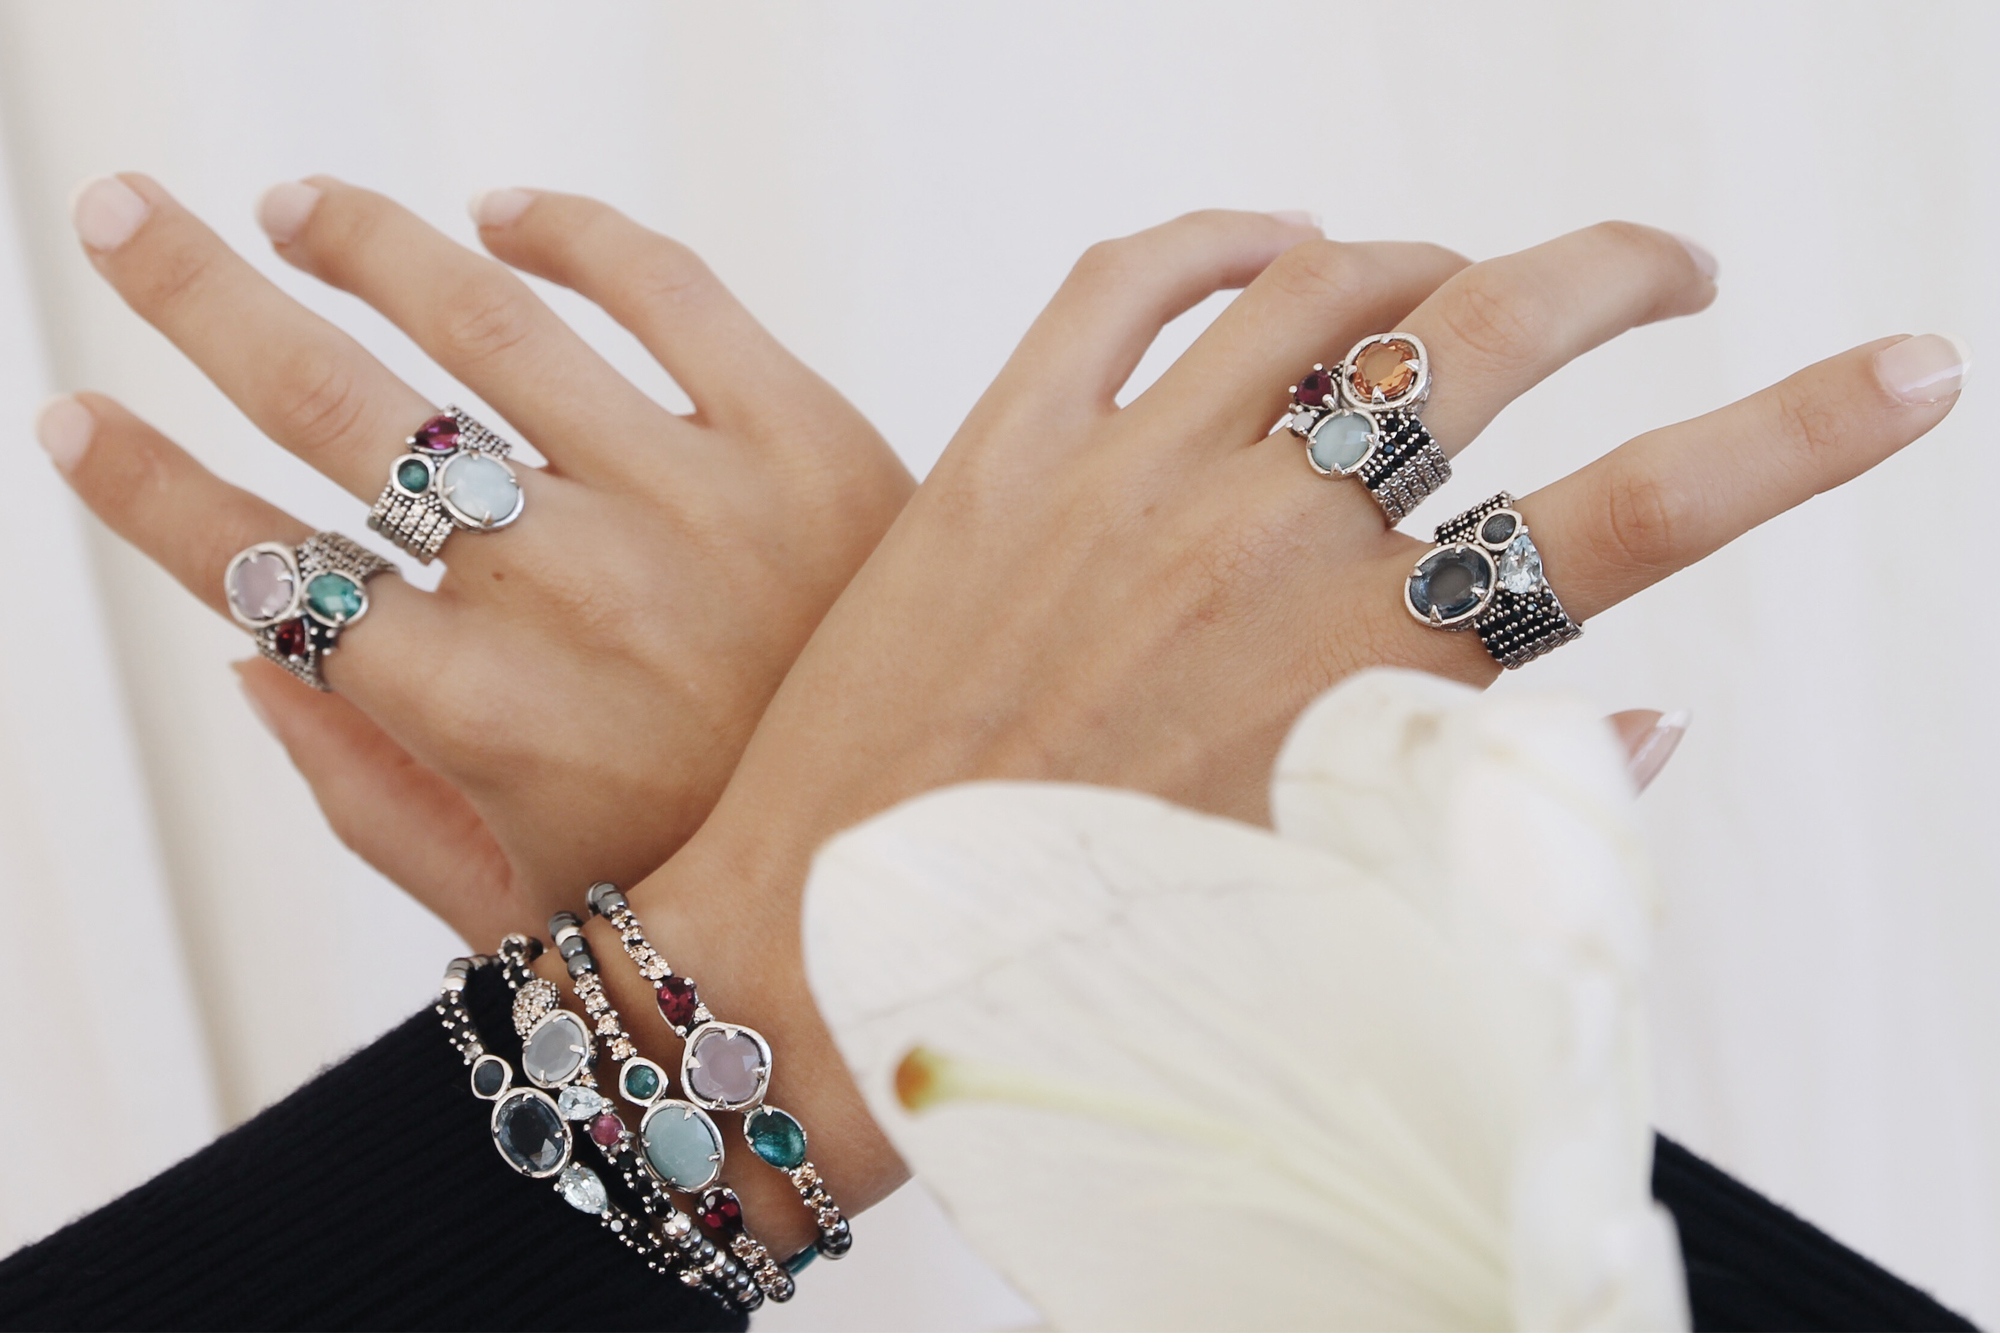 XDC_GREATRIFT_hands_rings.jpg